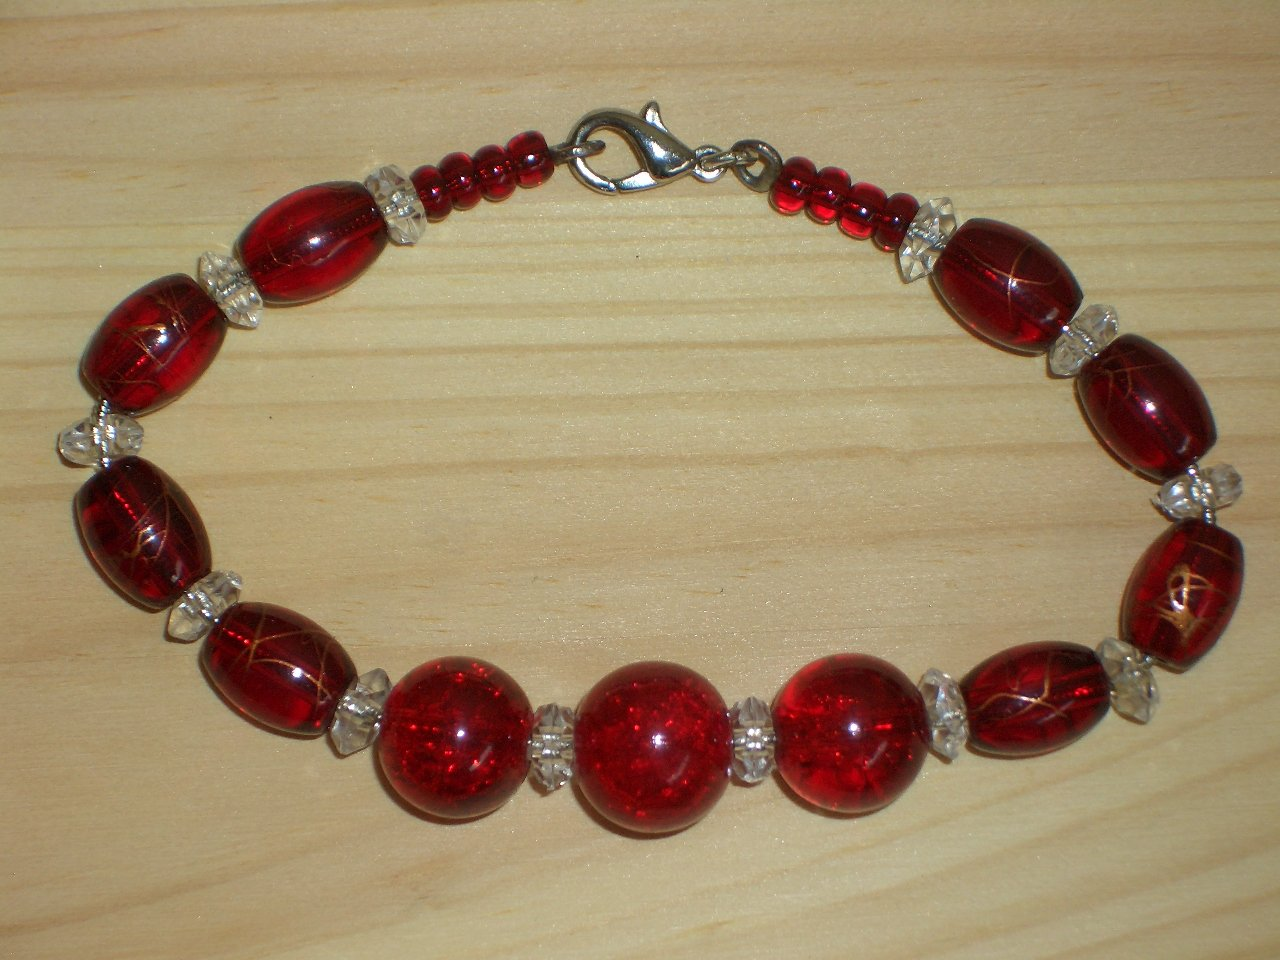 Flaming Red Hot Bracelet Clear Red Crackled Faceted Round Oval Seed Glass Beads Flirty Bold Sexy